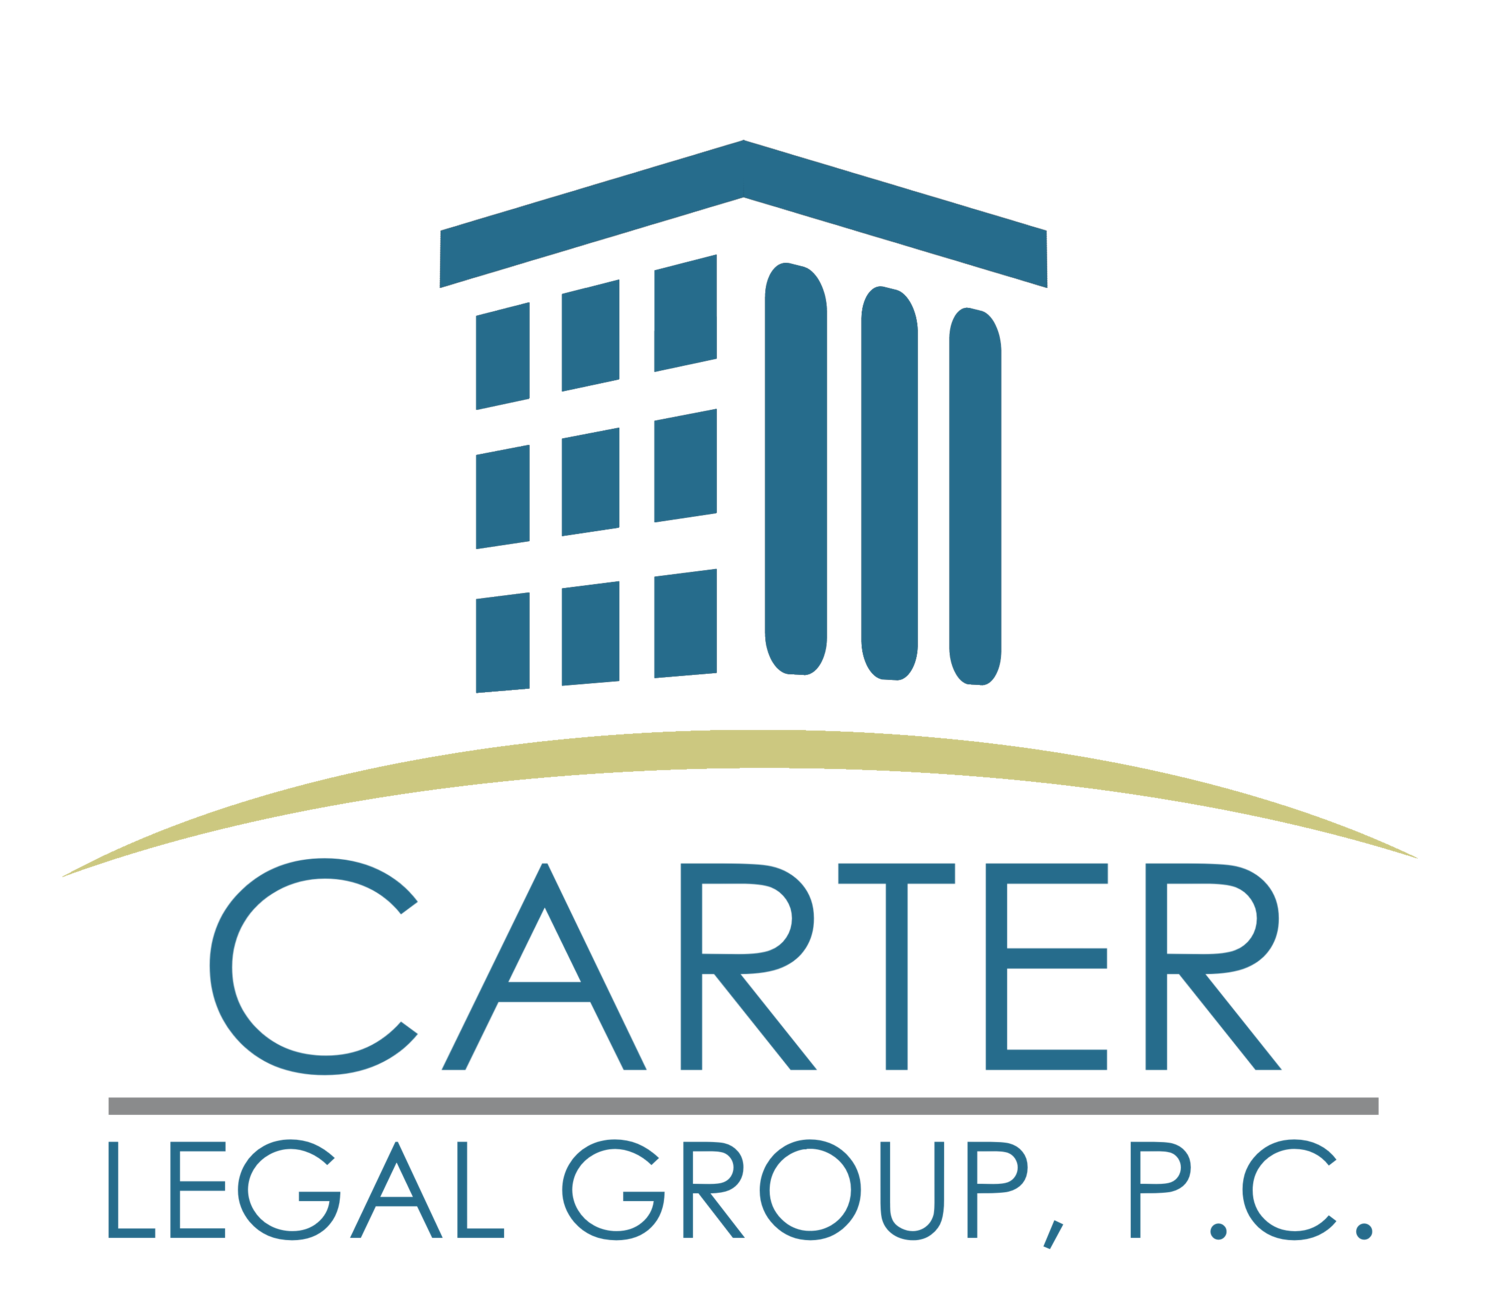 Carter Legal Group